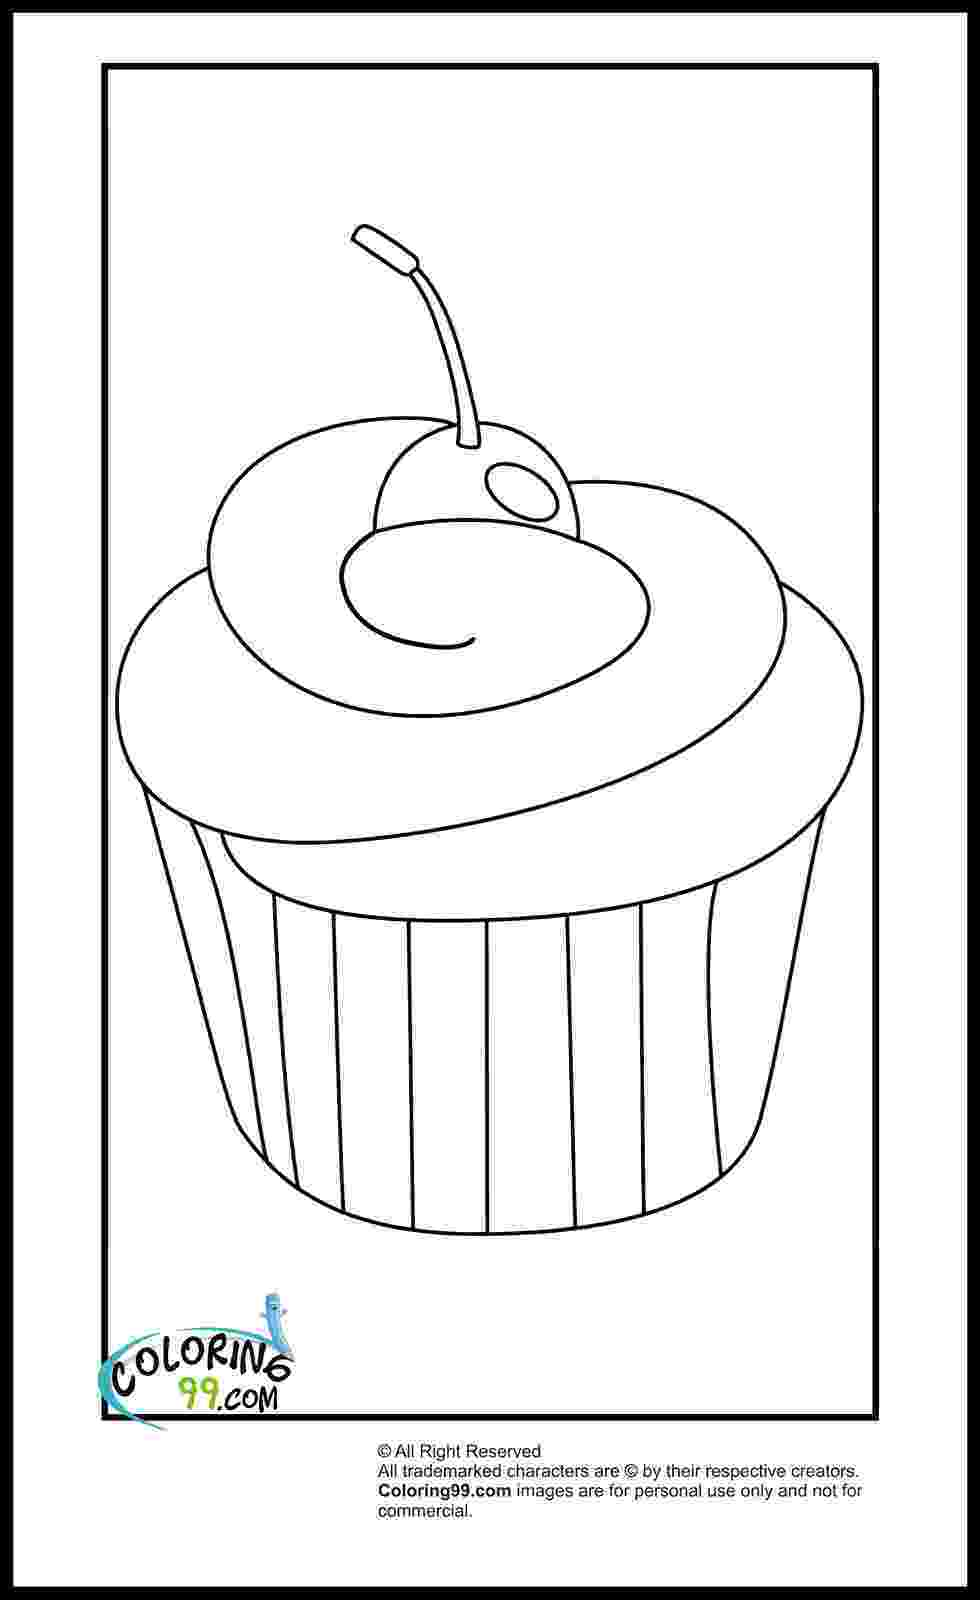 easy coloring pages to print simple flower coloring page flower coloring pages kids easy print pages to coloring